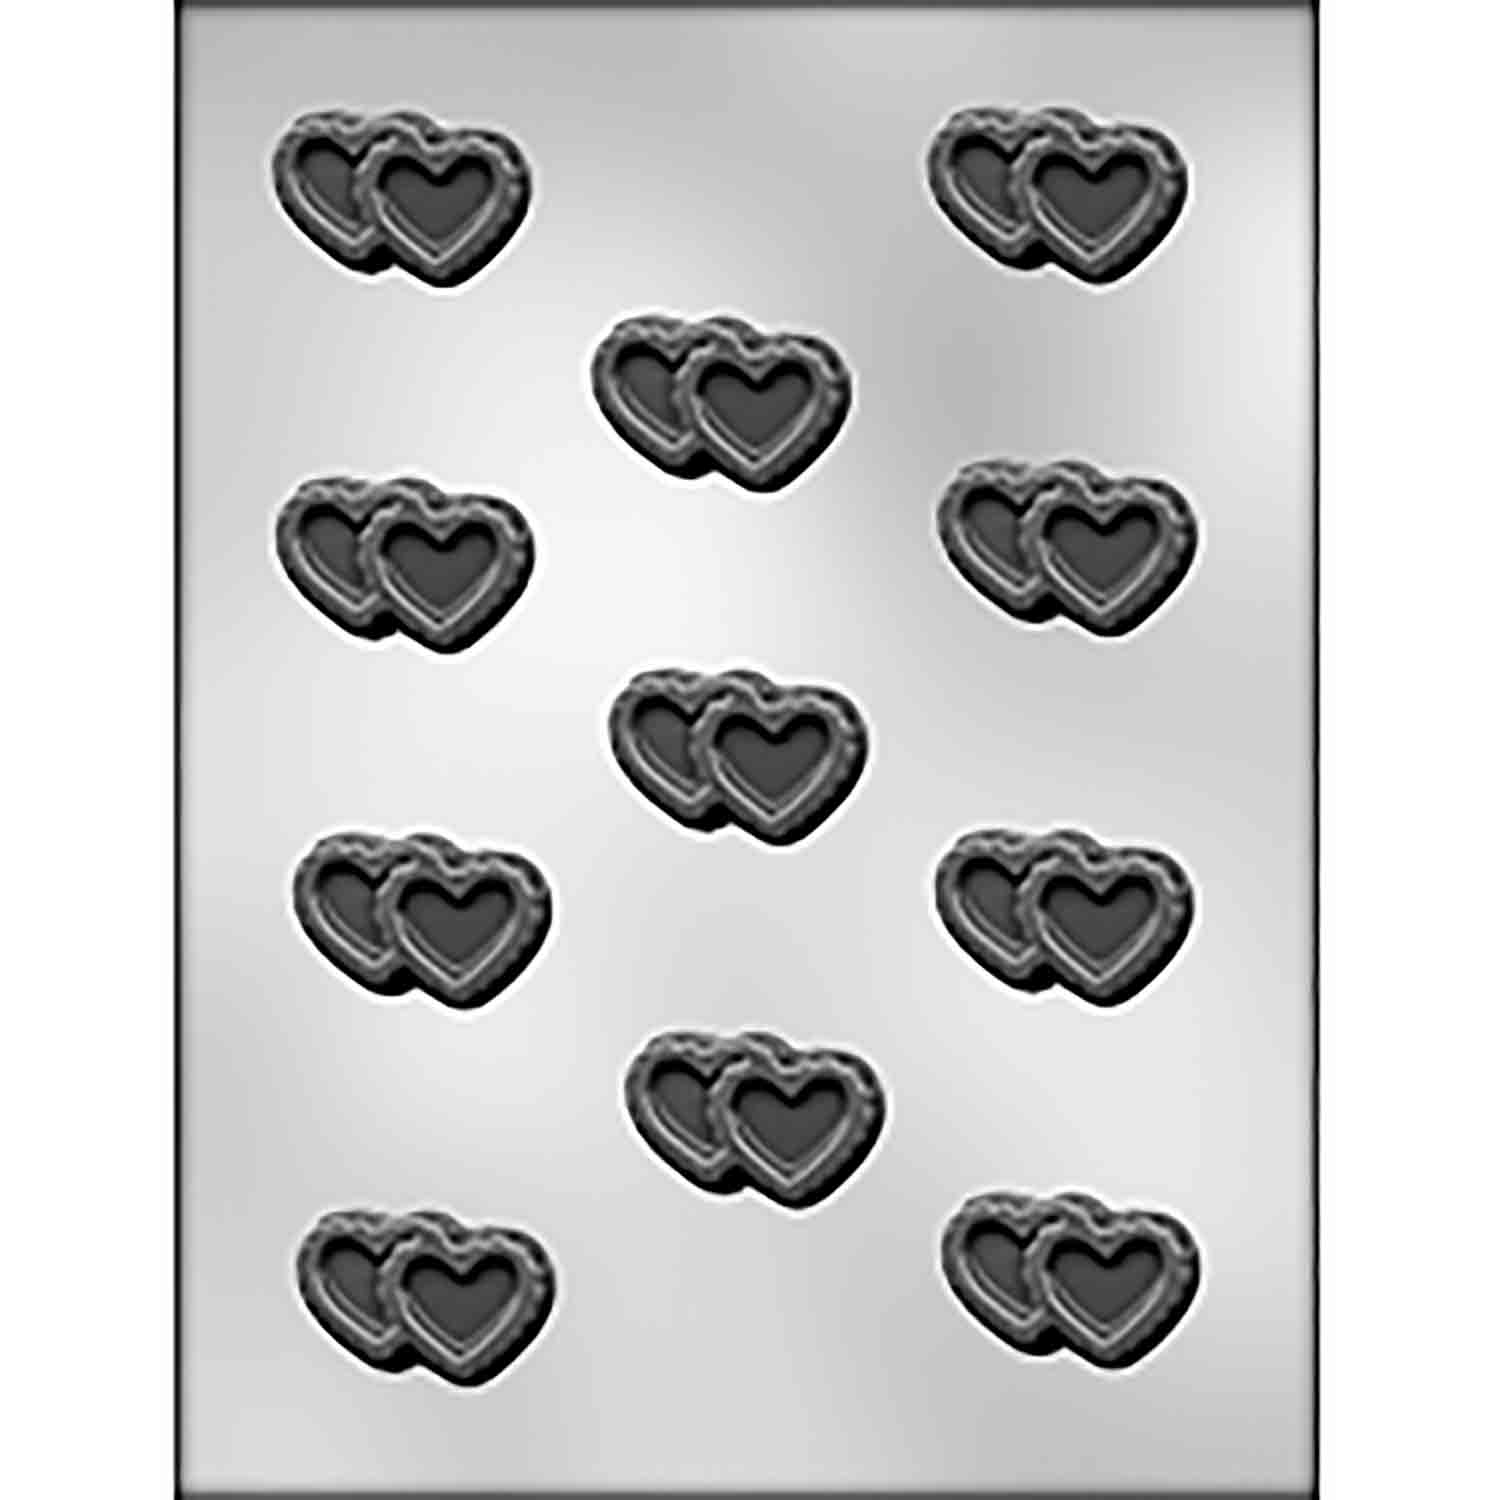 Double Filigree Heart Chocolate Candy Mold